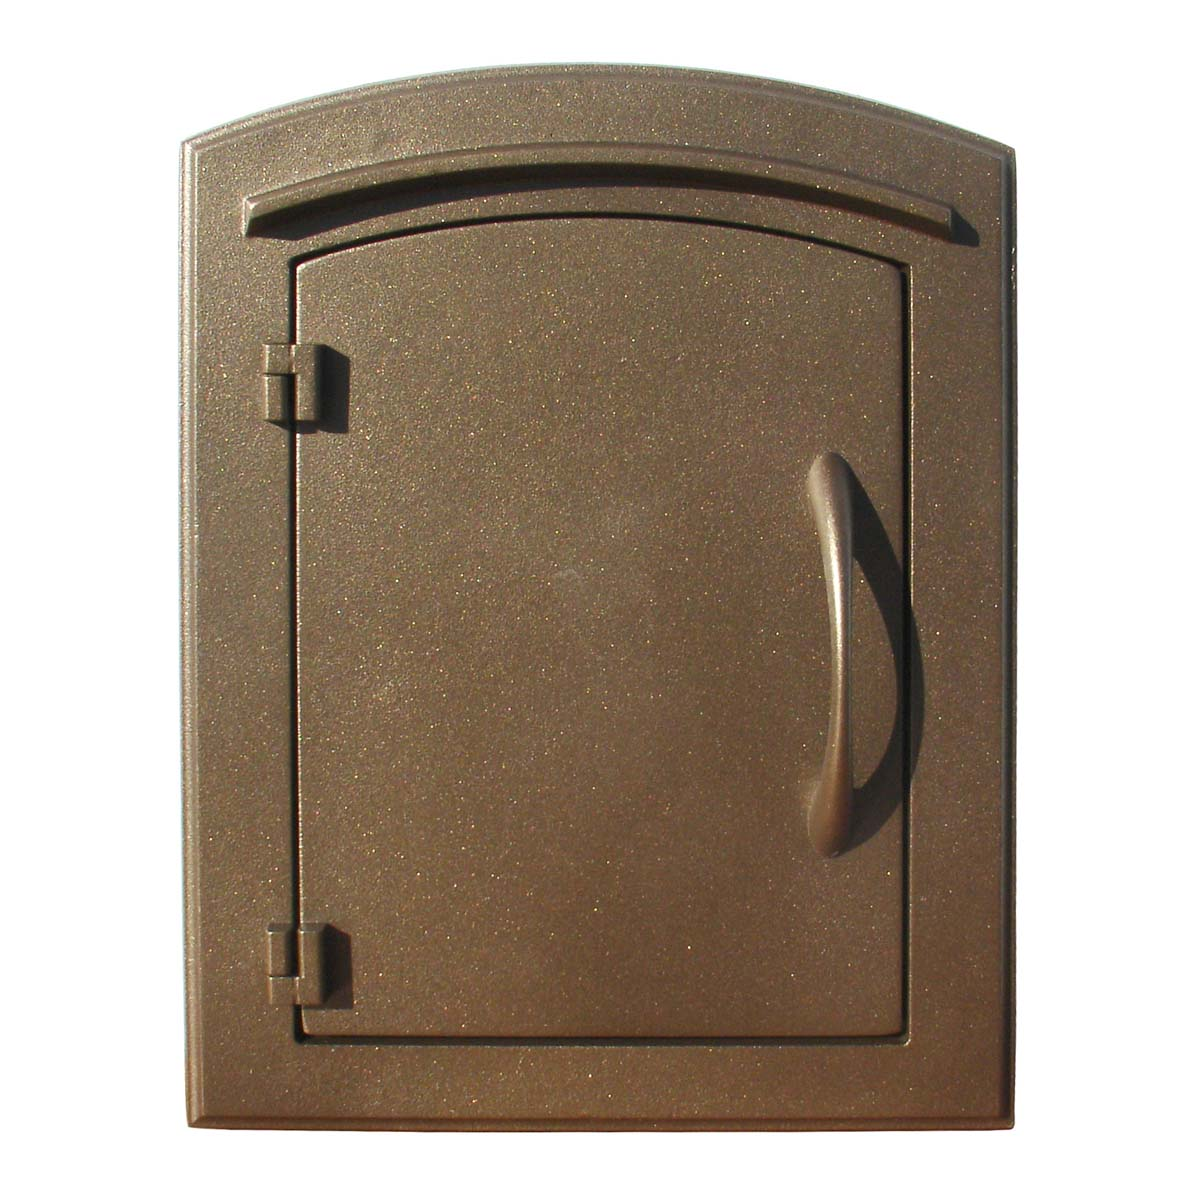 sc 1 st  TheMailboxStore.com & Manchester Comunm Mailbox Door and Faceplate